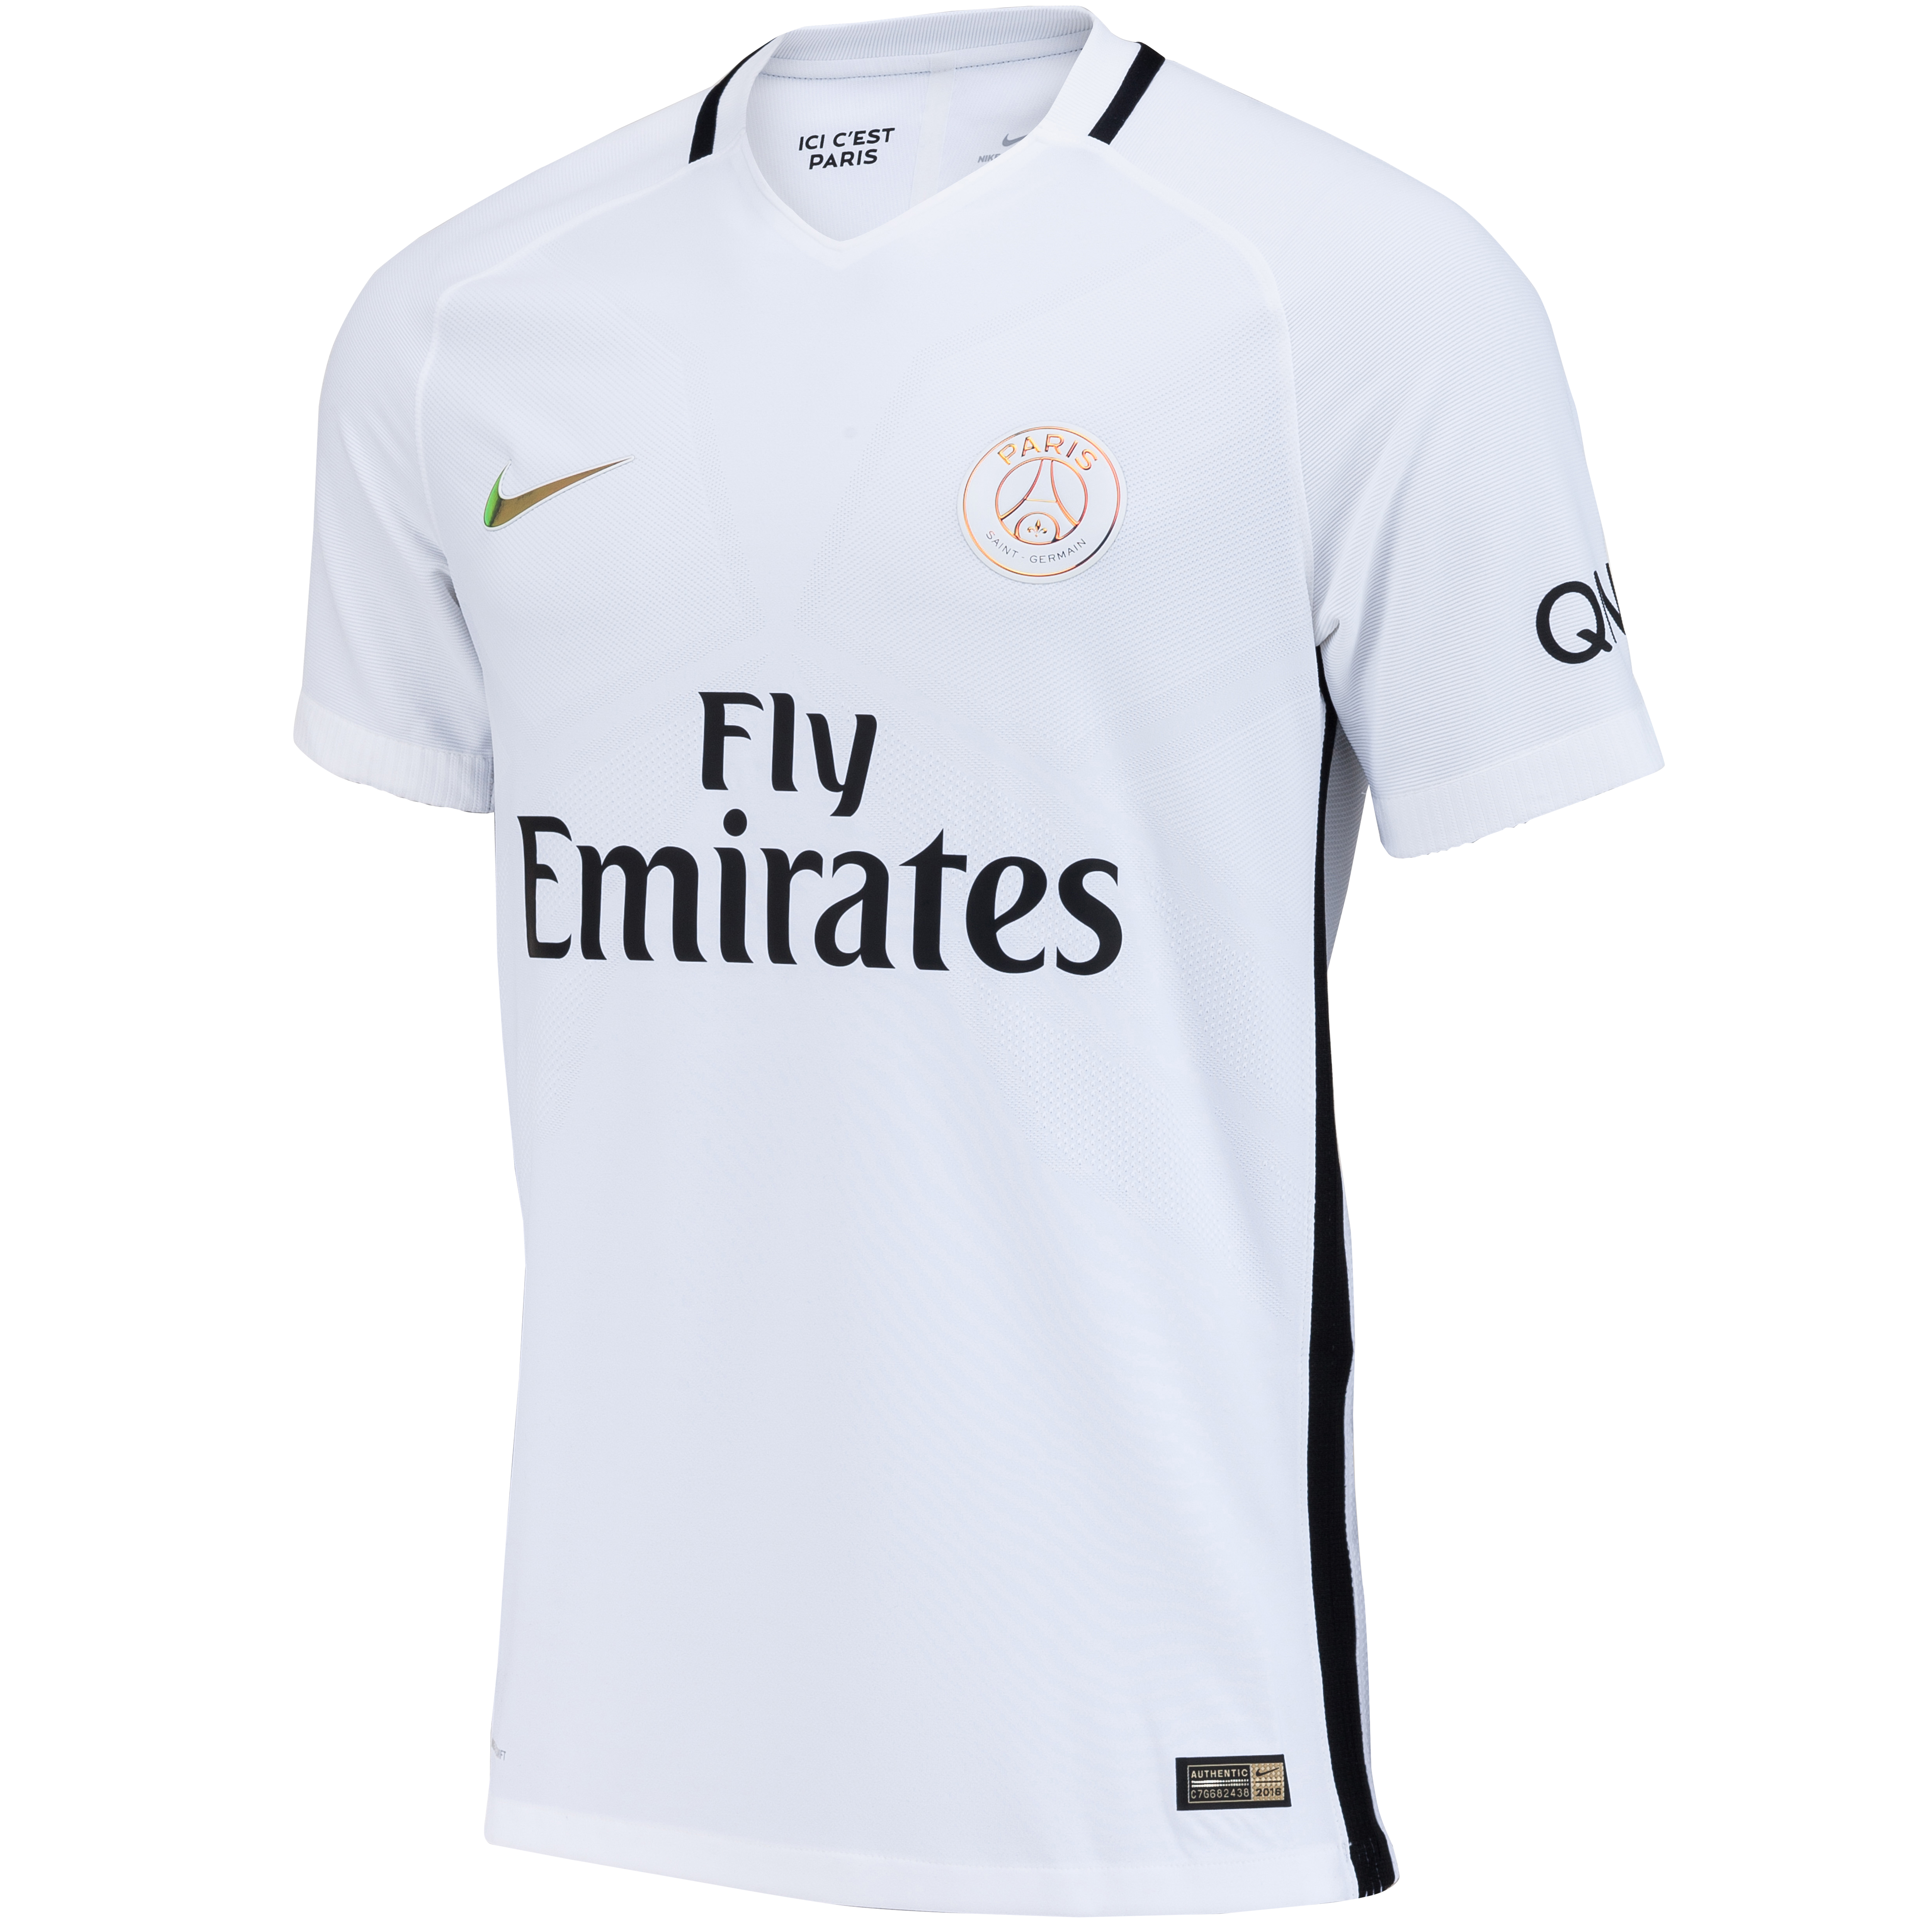 Paris Saint Germain THIRD jersey